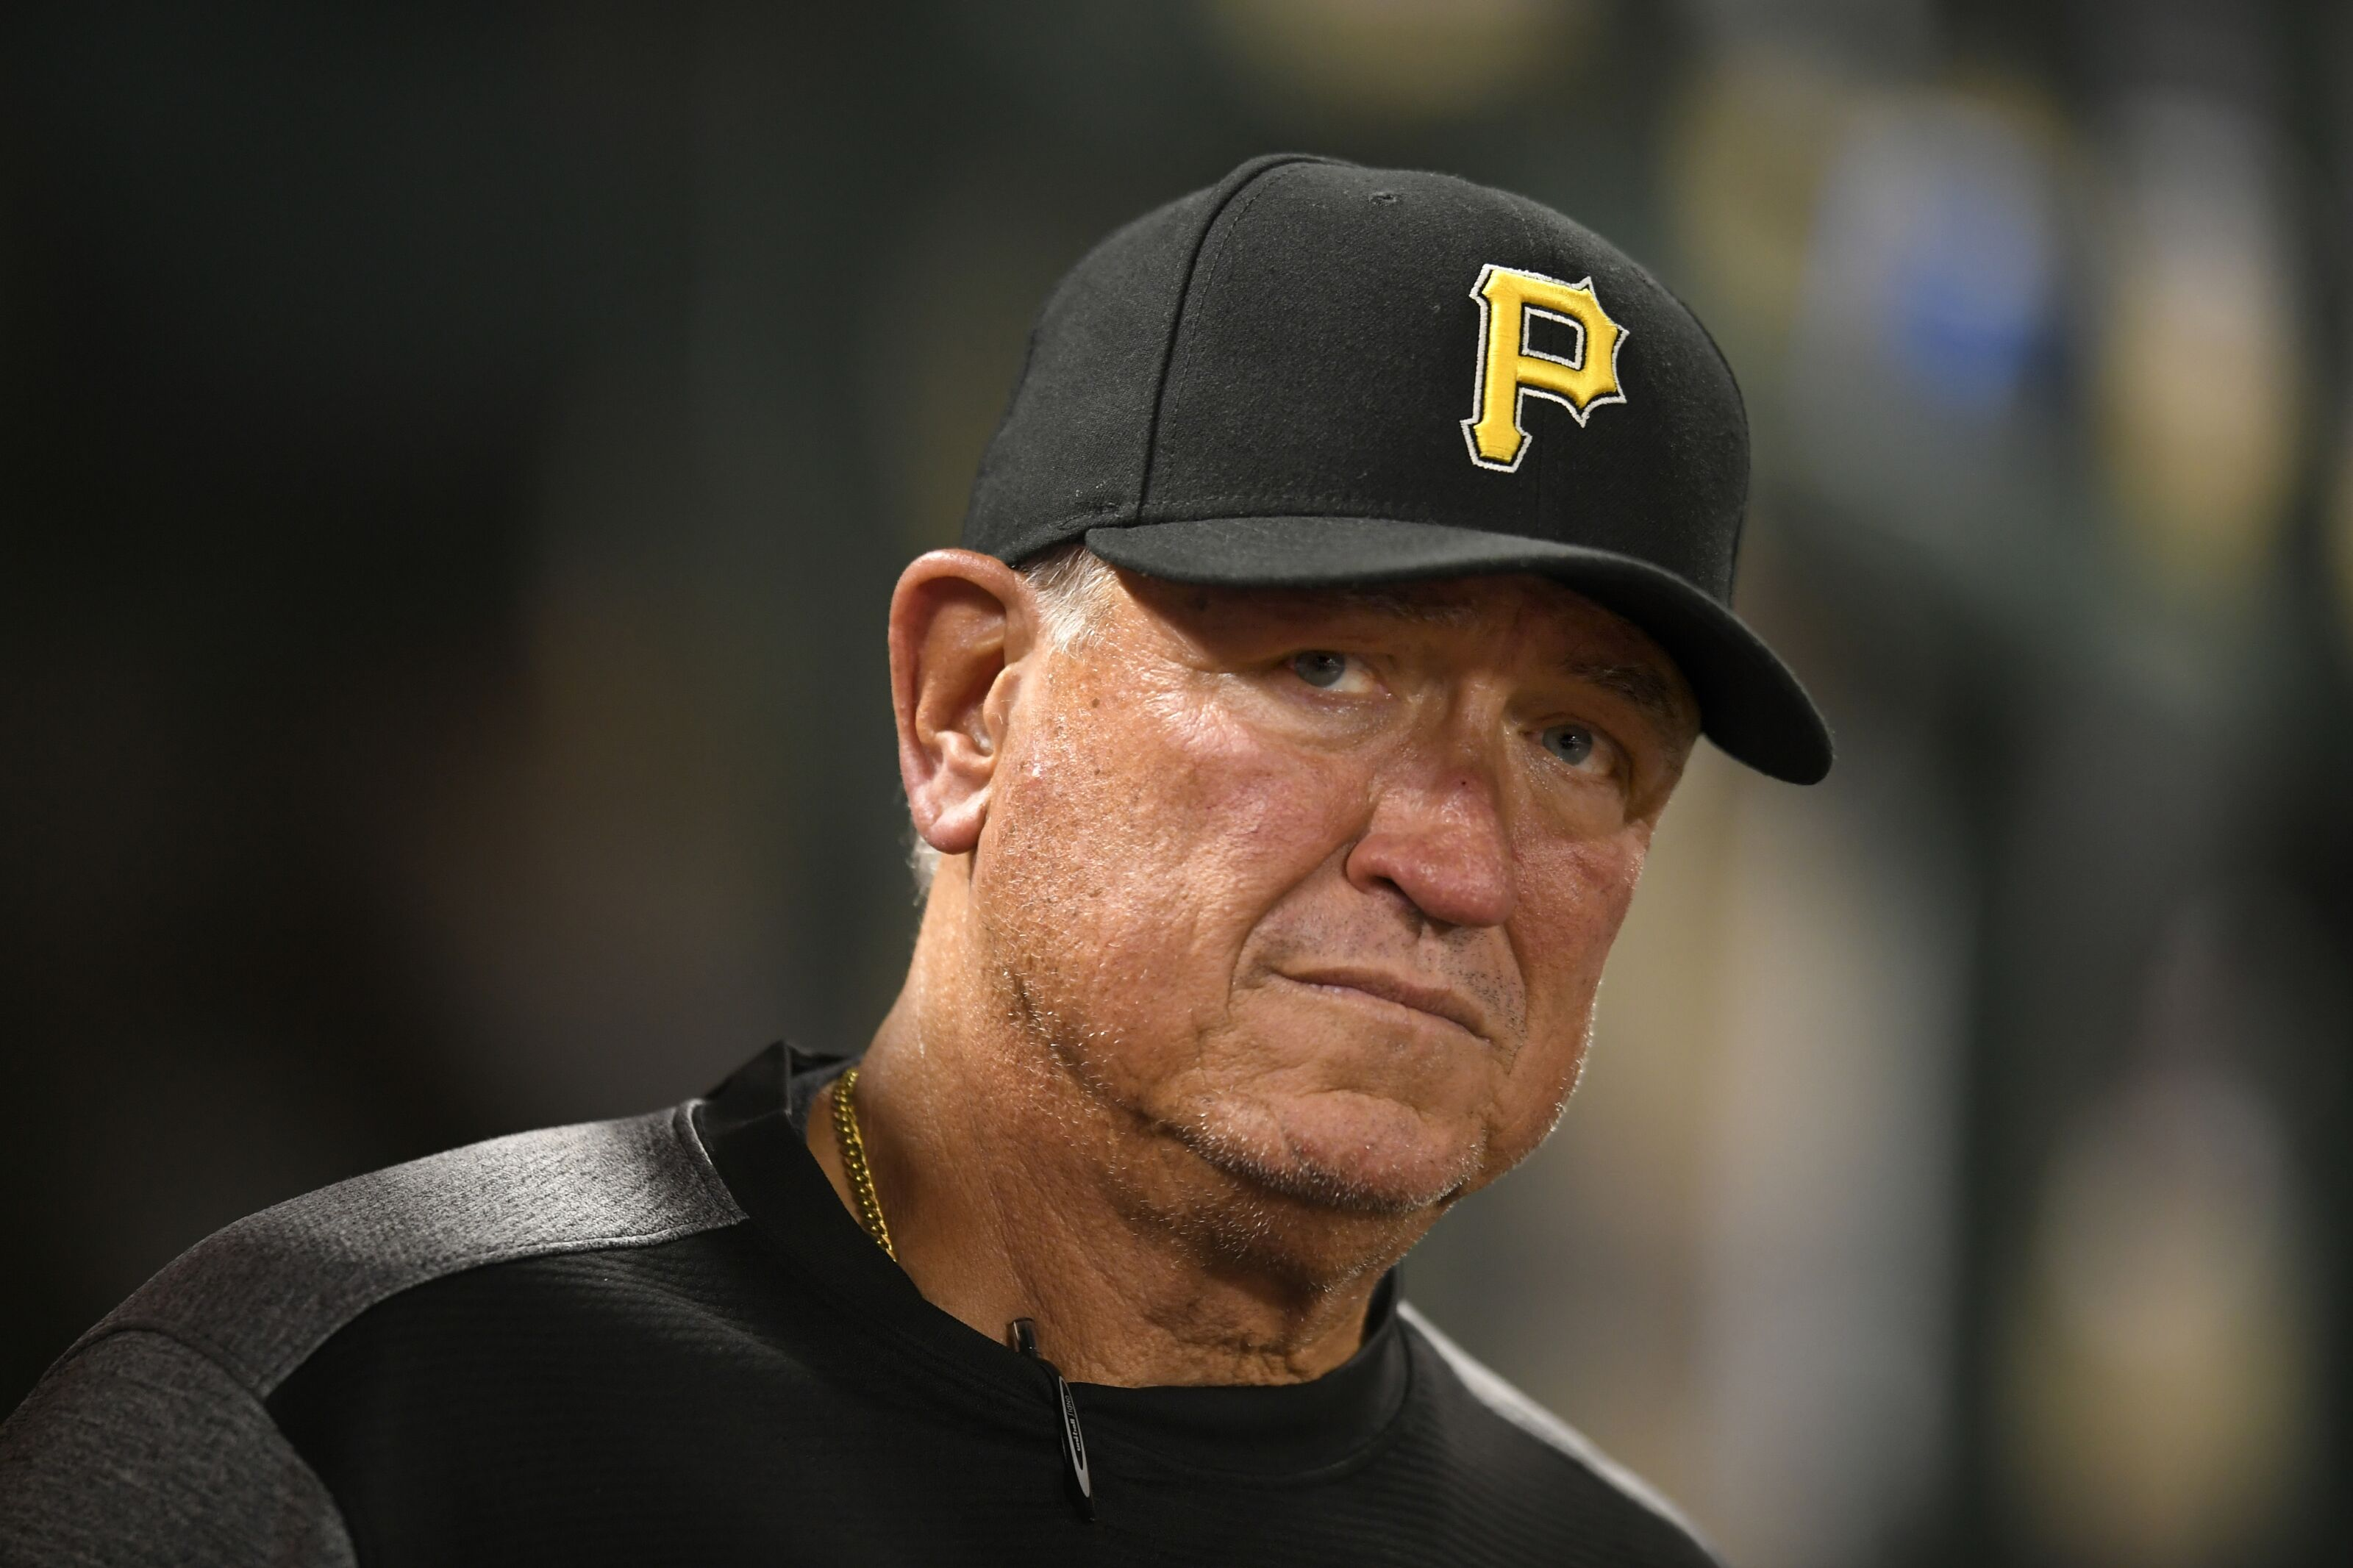 Pittsburgh Pirates: Clint Hurdle should not be brought back next year